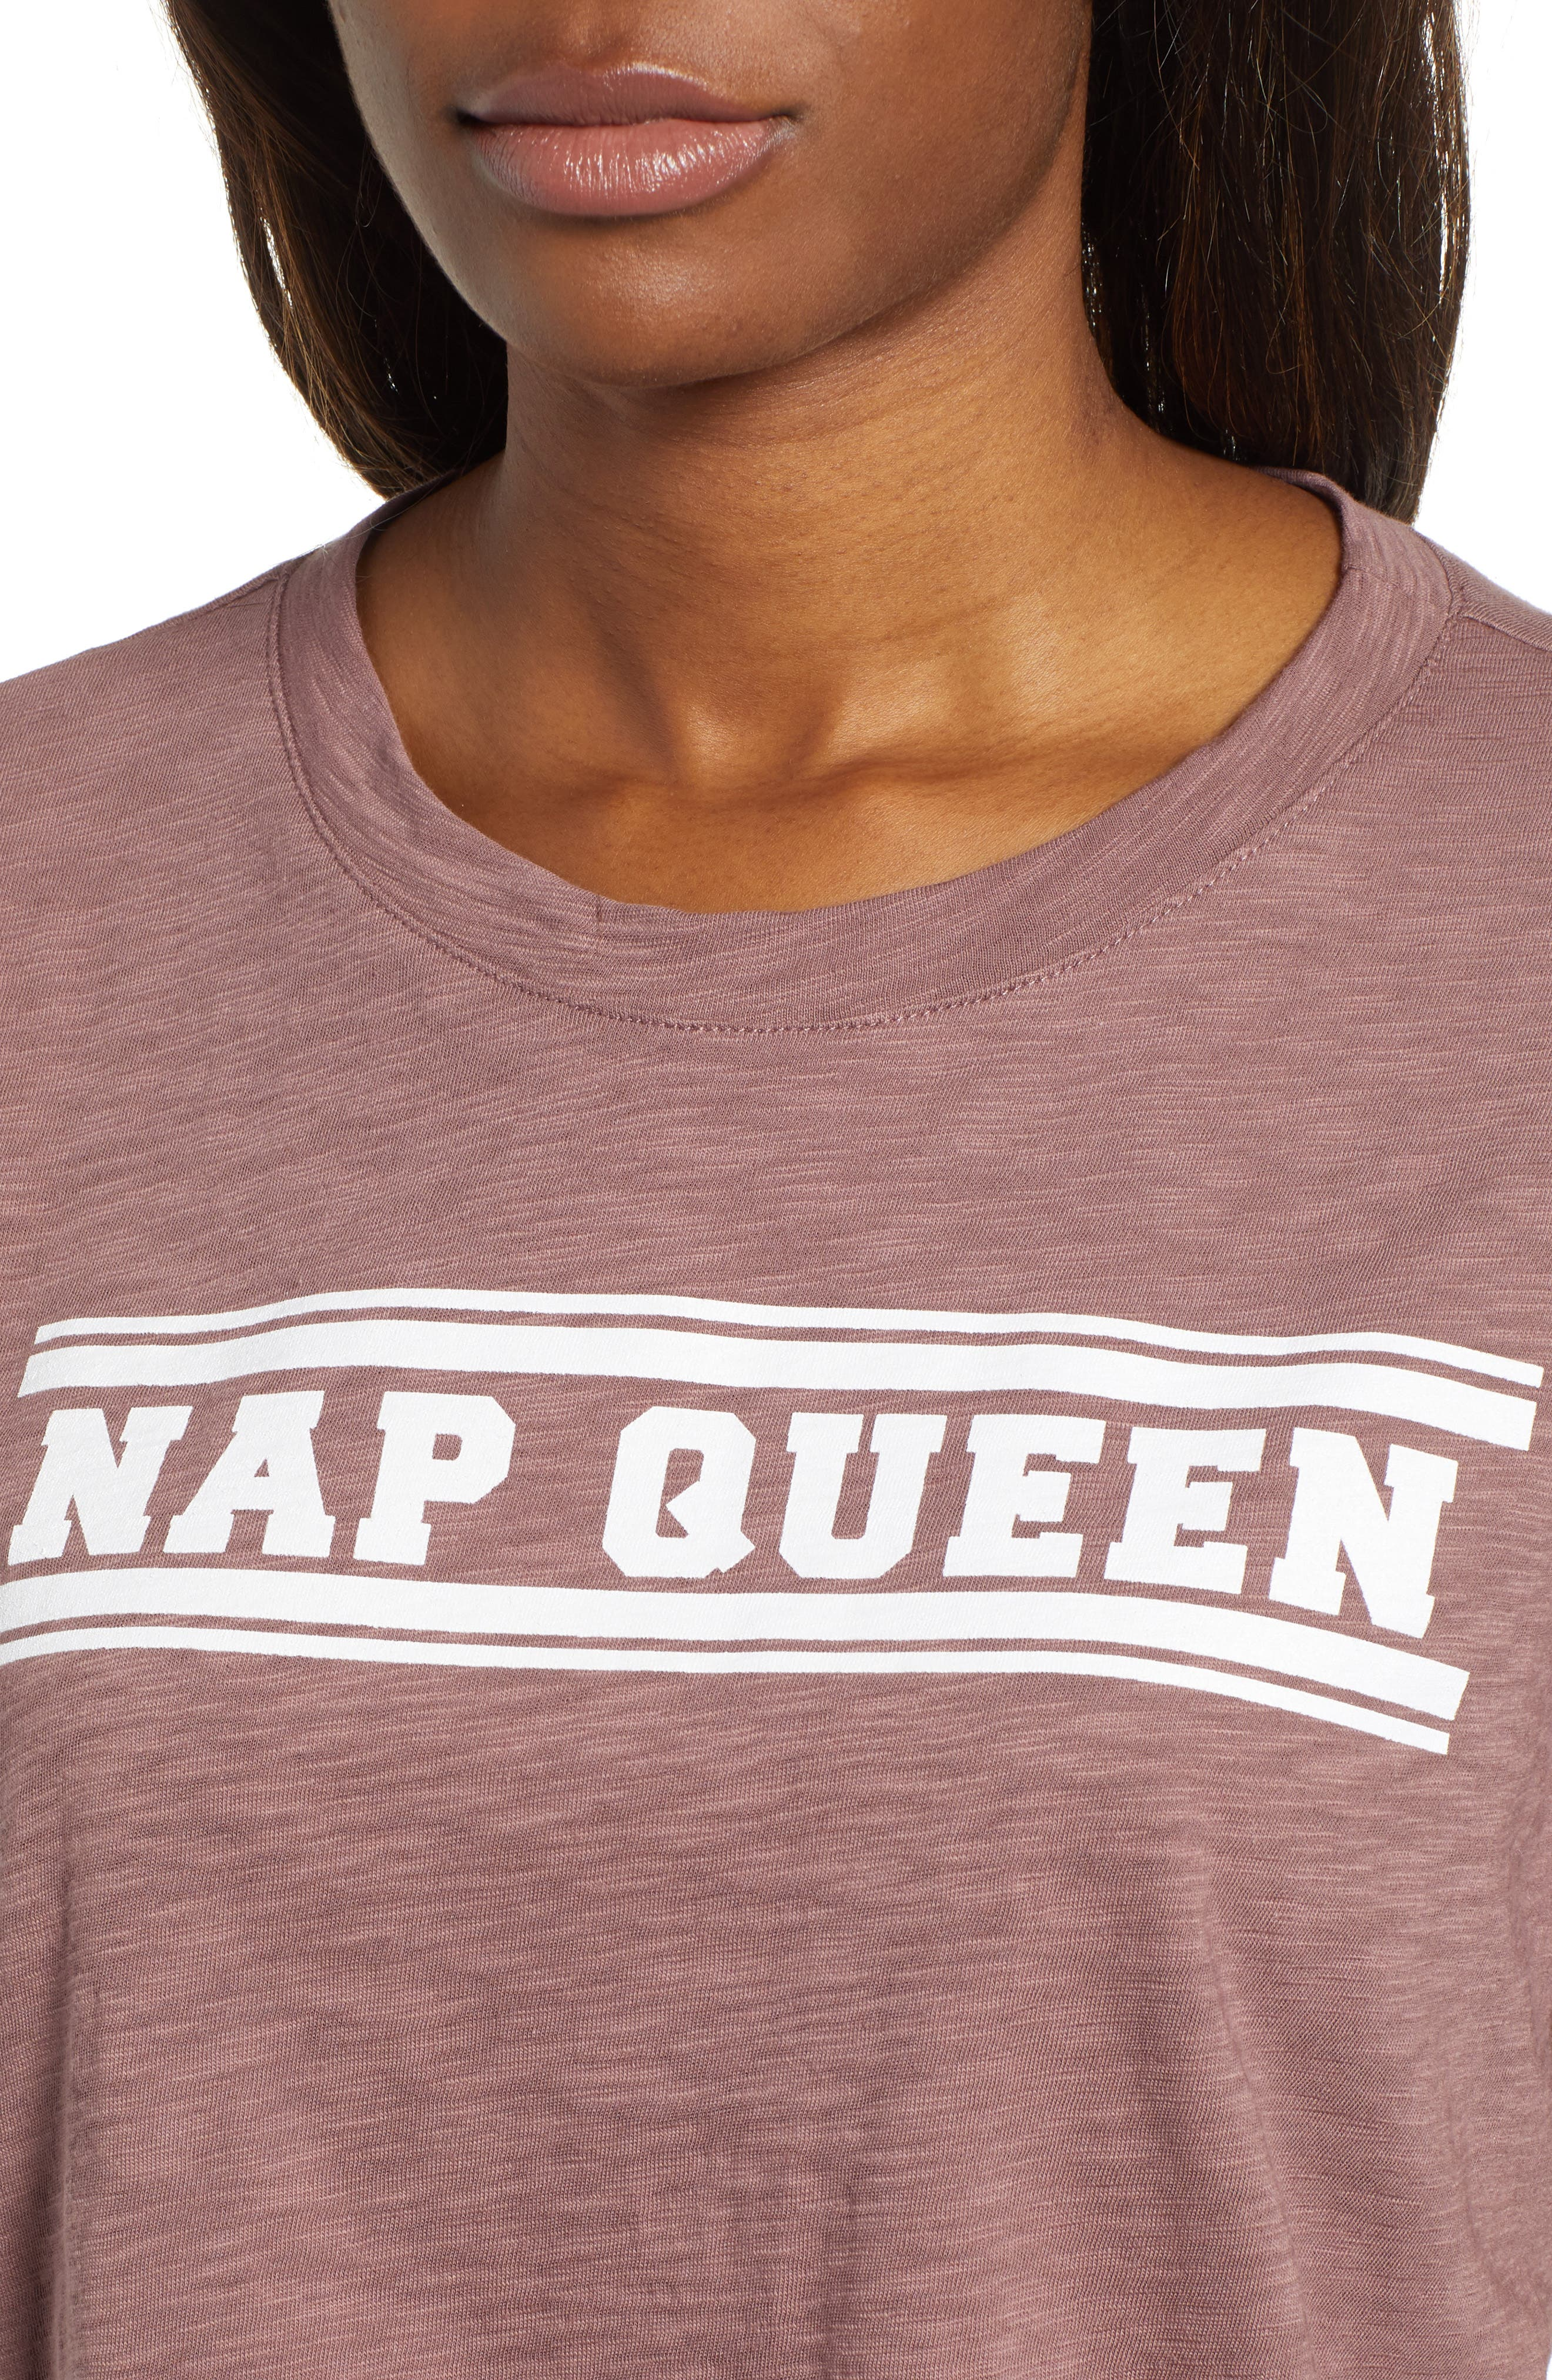 Off Duty Graphic Tee,                             Alternate thumbnail 4, color,                             PURPLE TAUPE